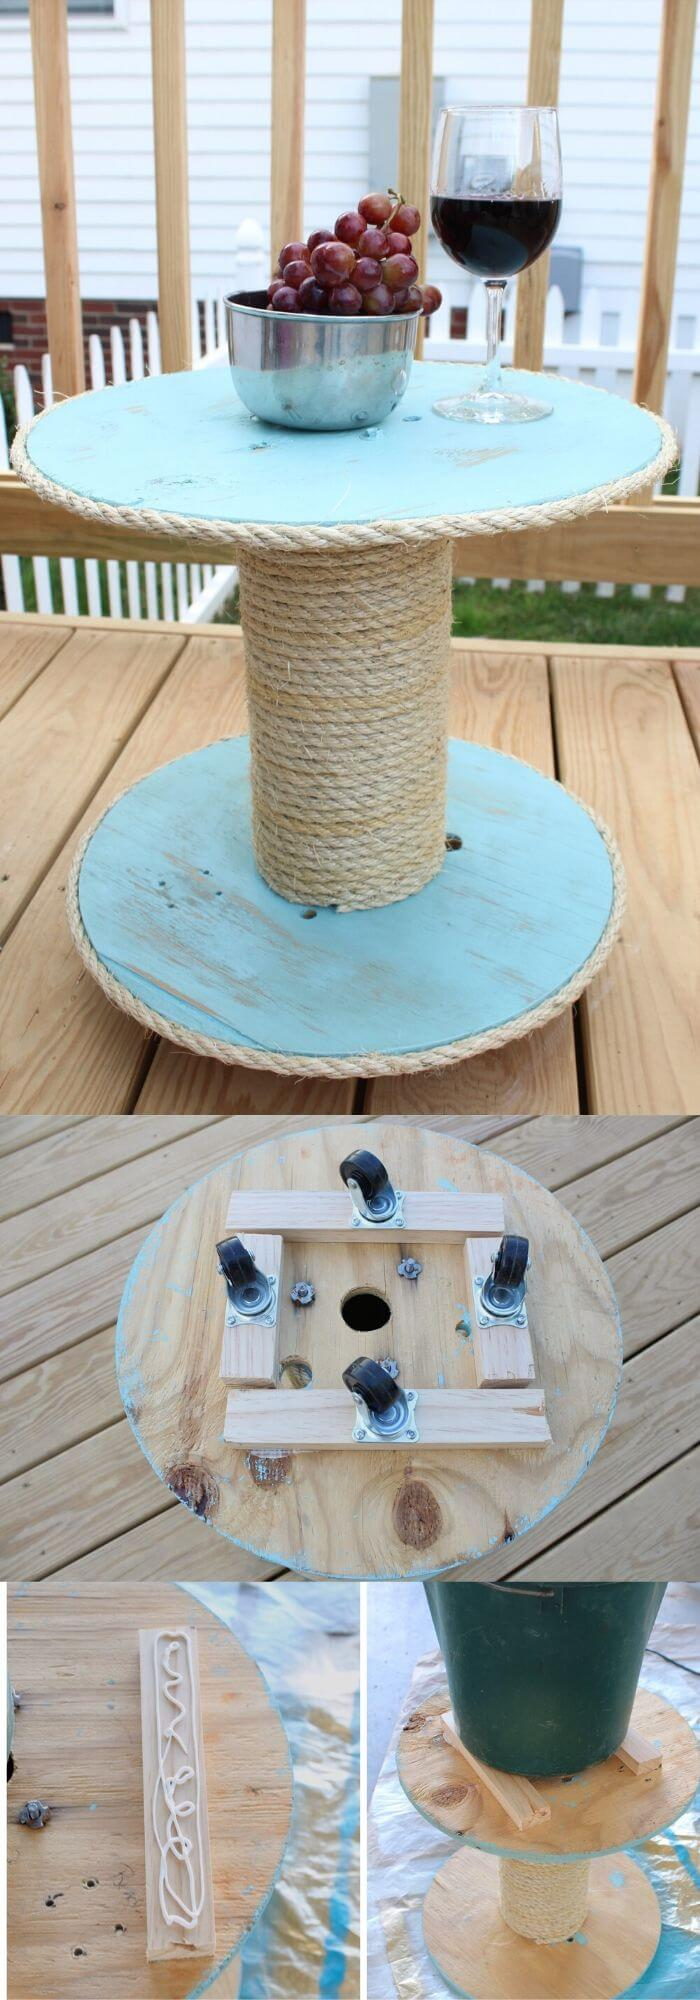 DIY nautical spool side table | Beach-Style Outdoor Ideas For Your Porch and Backyard